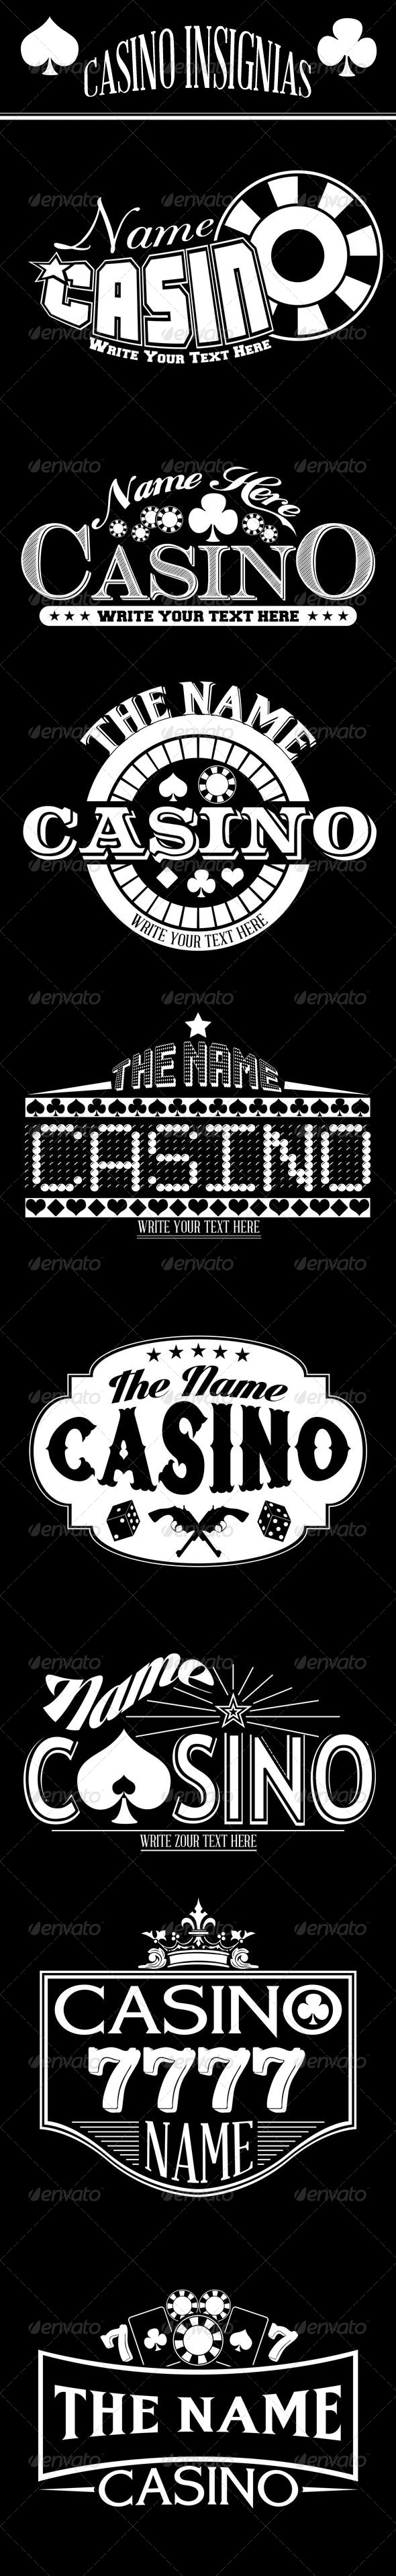 8 Casino Insignias